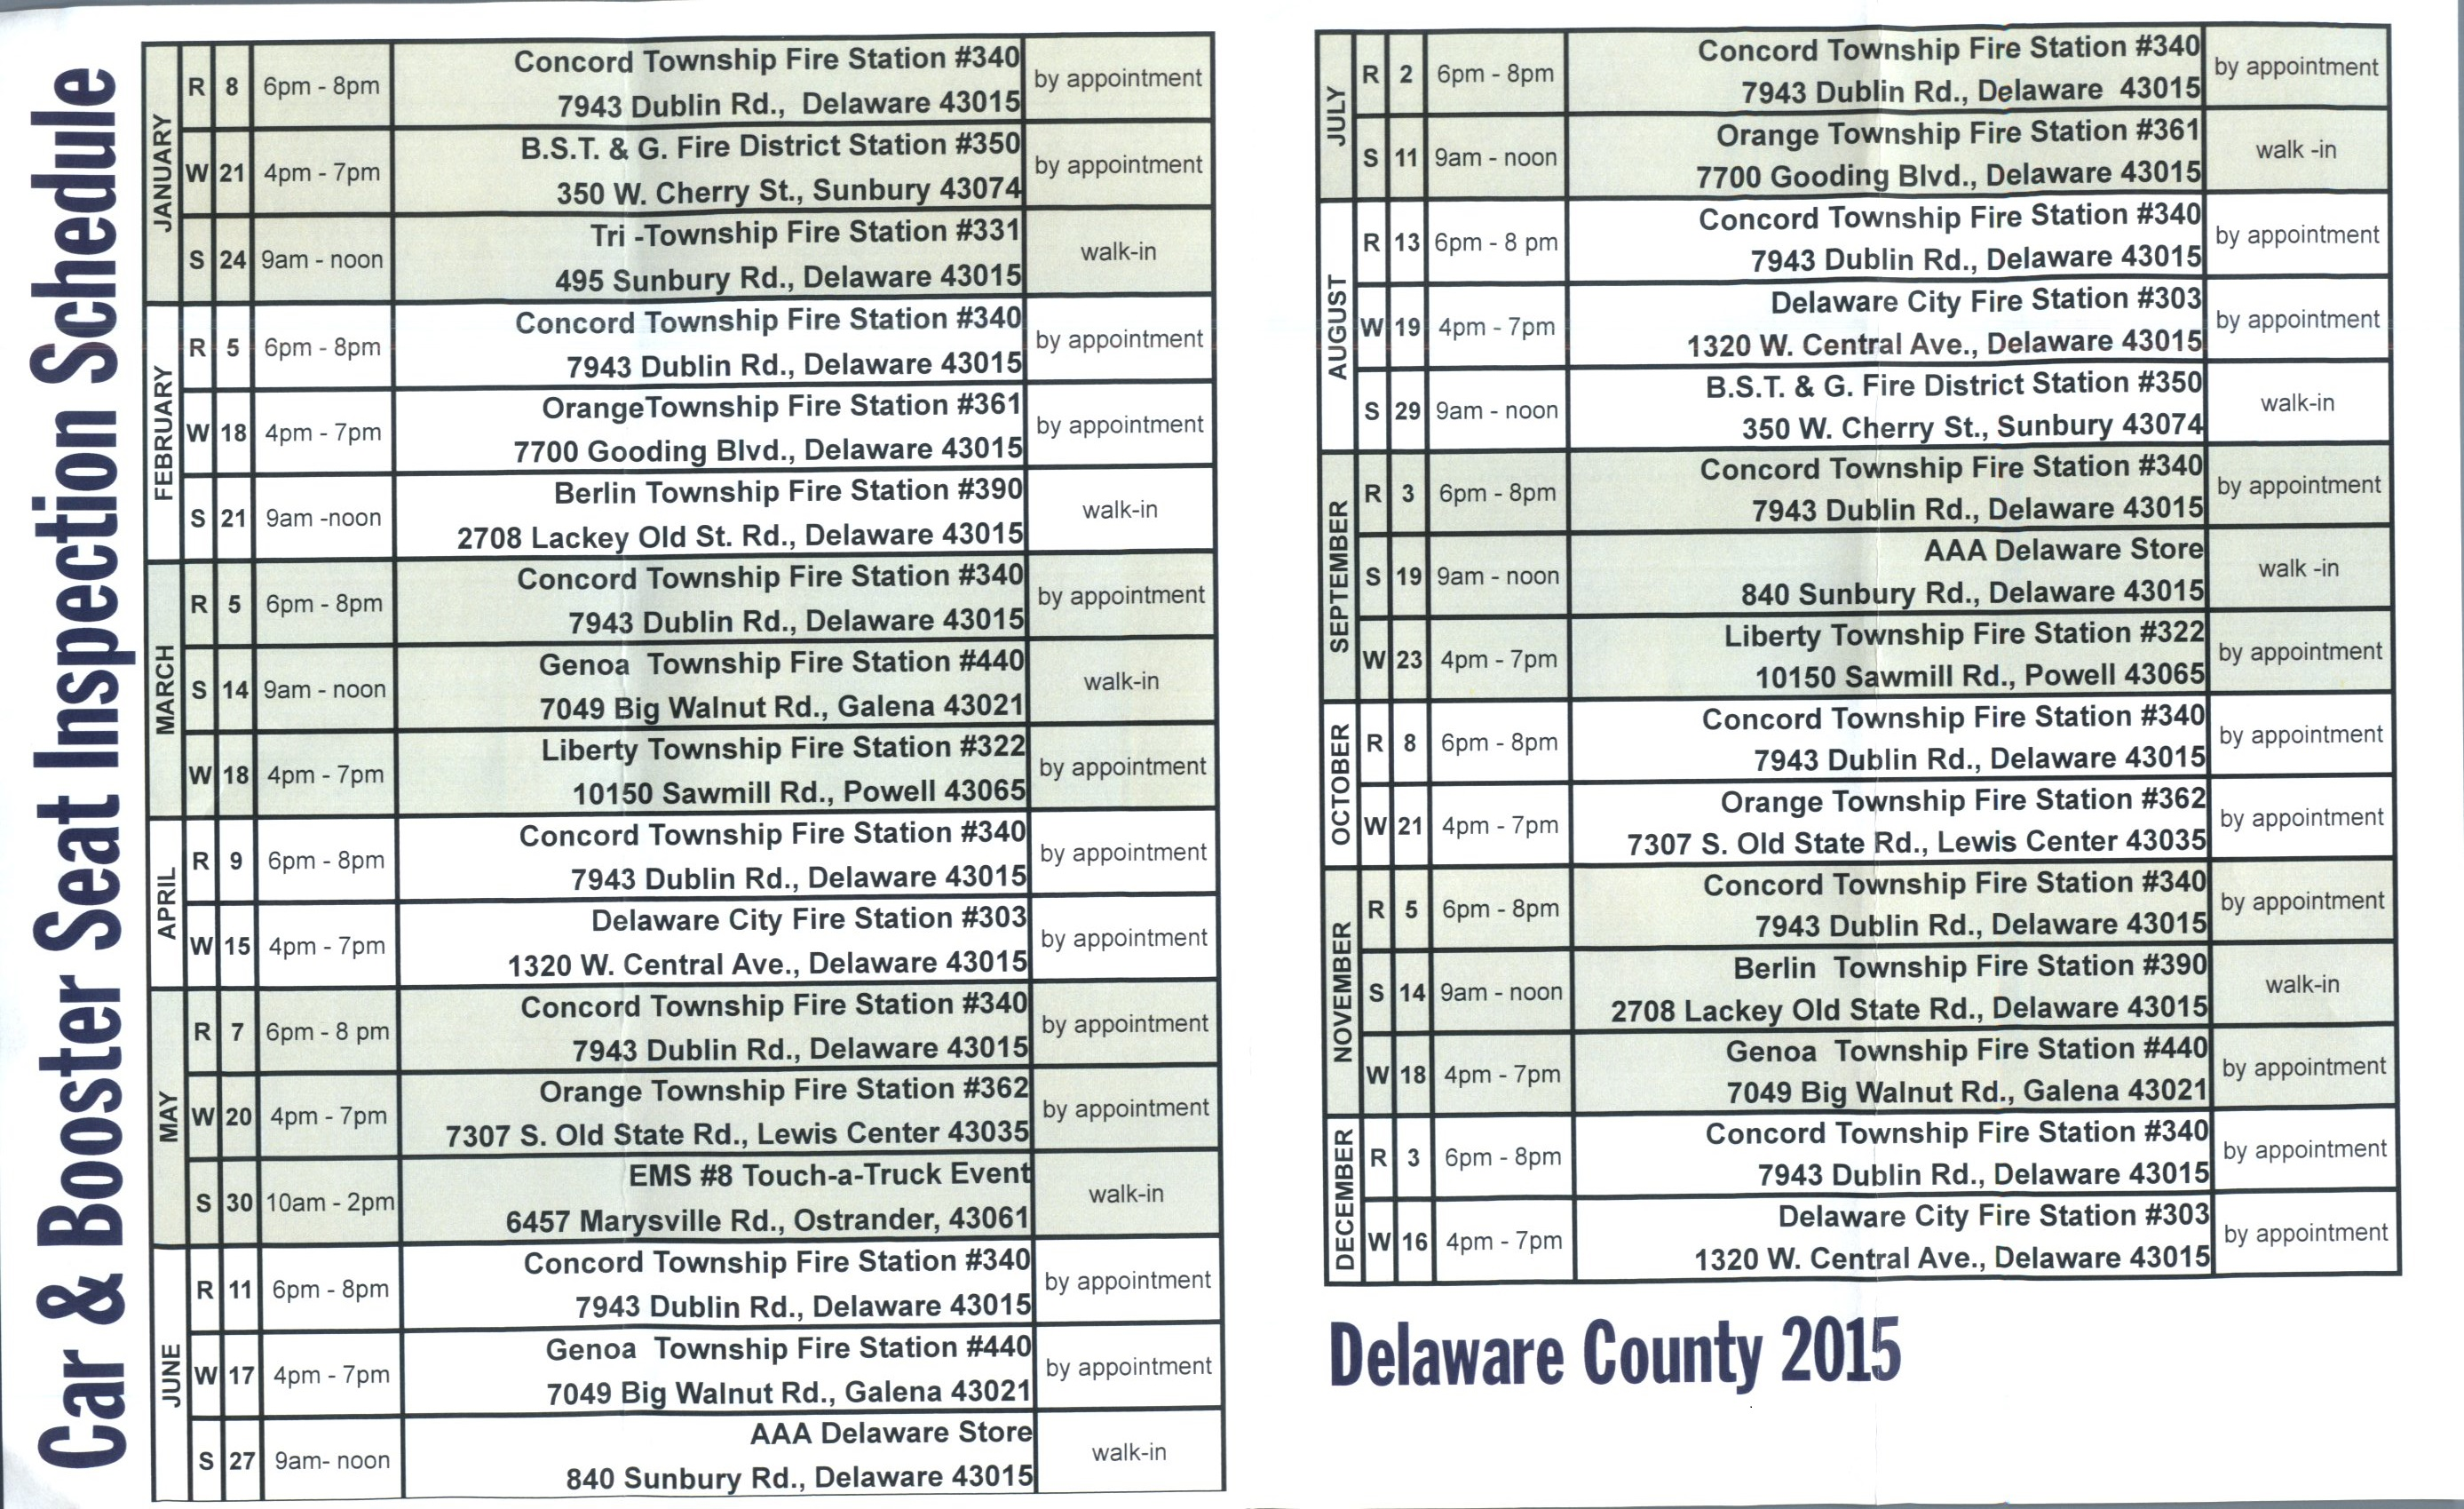 Delaware County Car & Booster Seat Inspections 2015